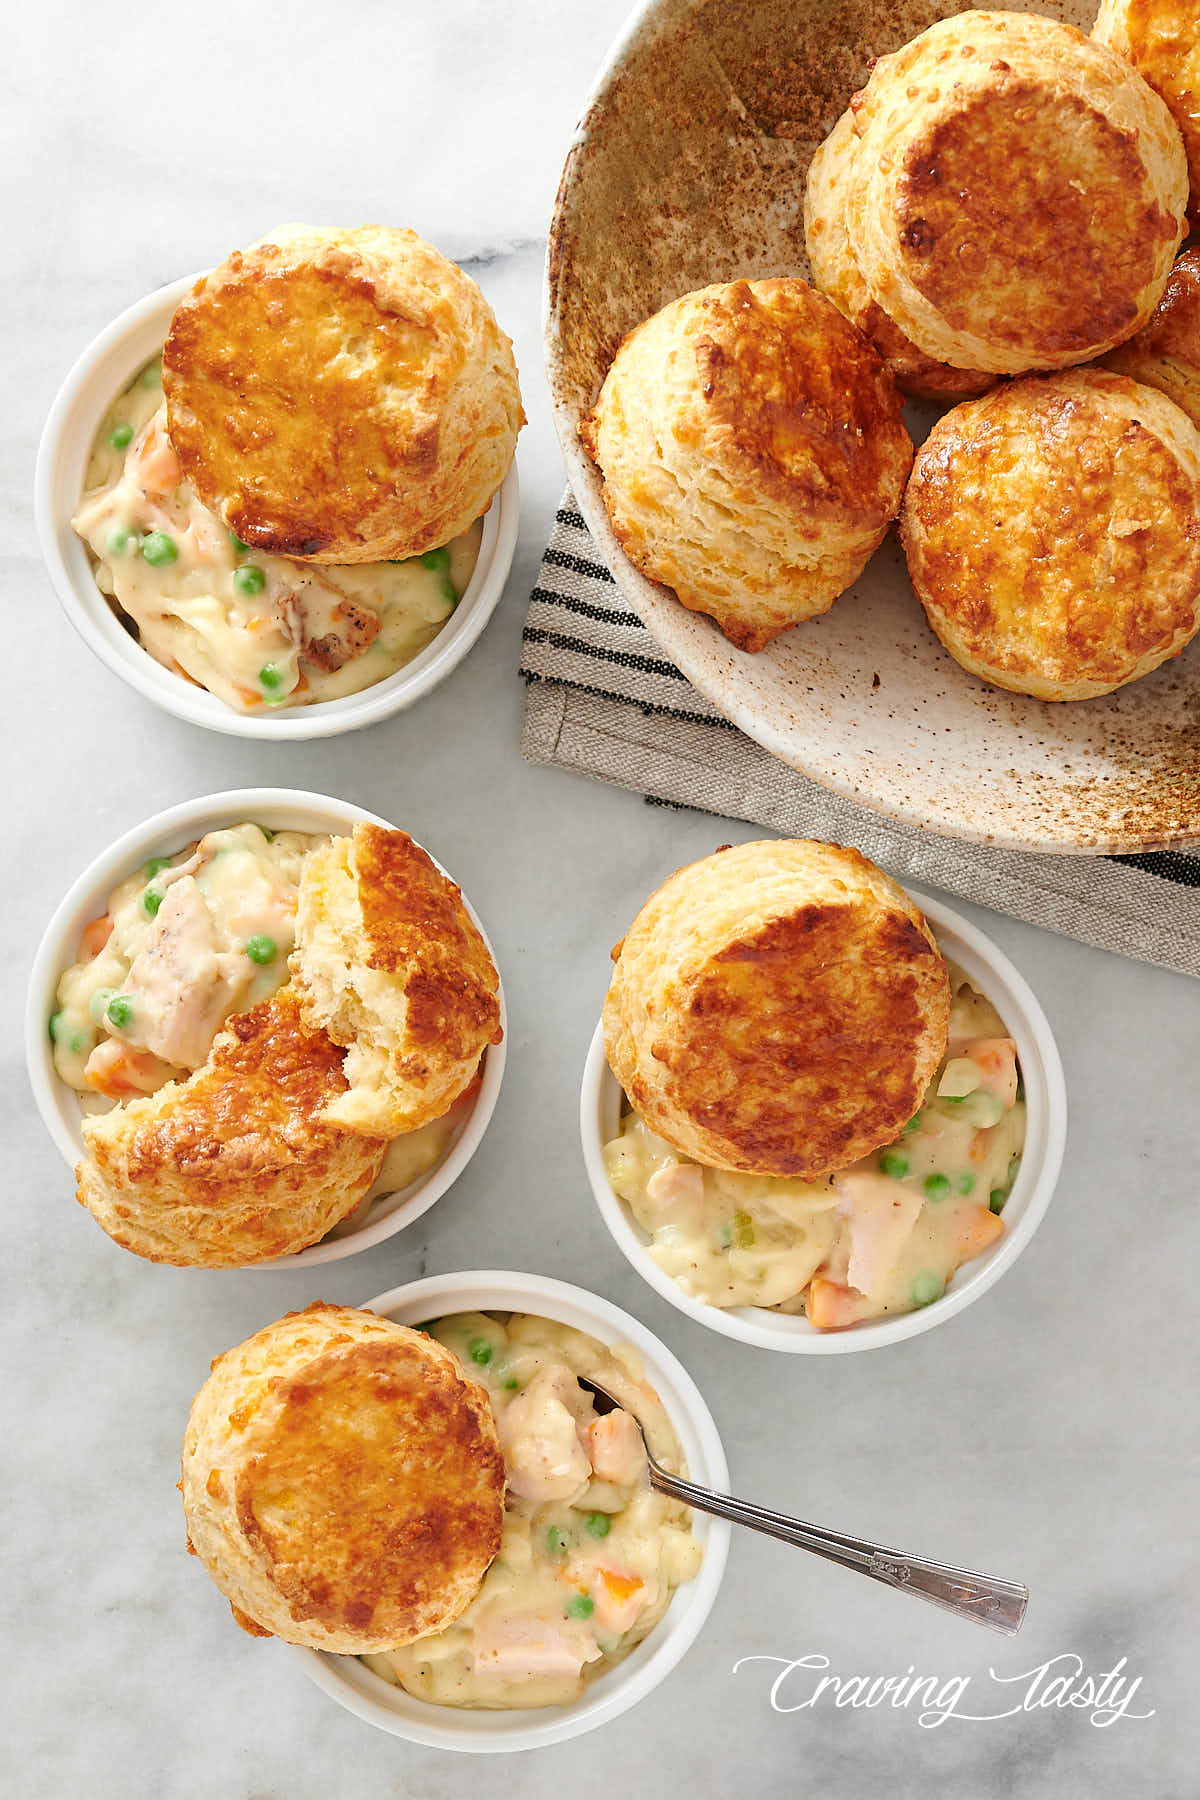 Ramekins filled with creamy chicken, topped with golden brown biscuits.